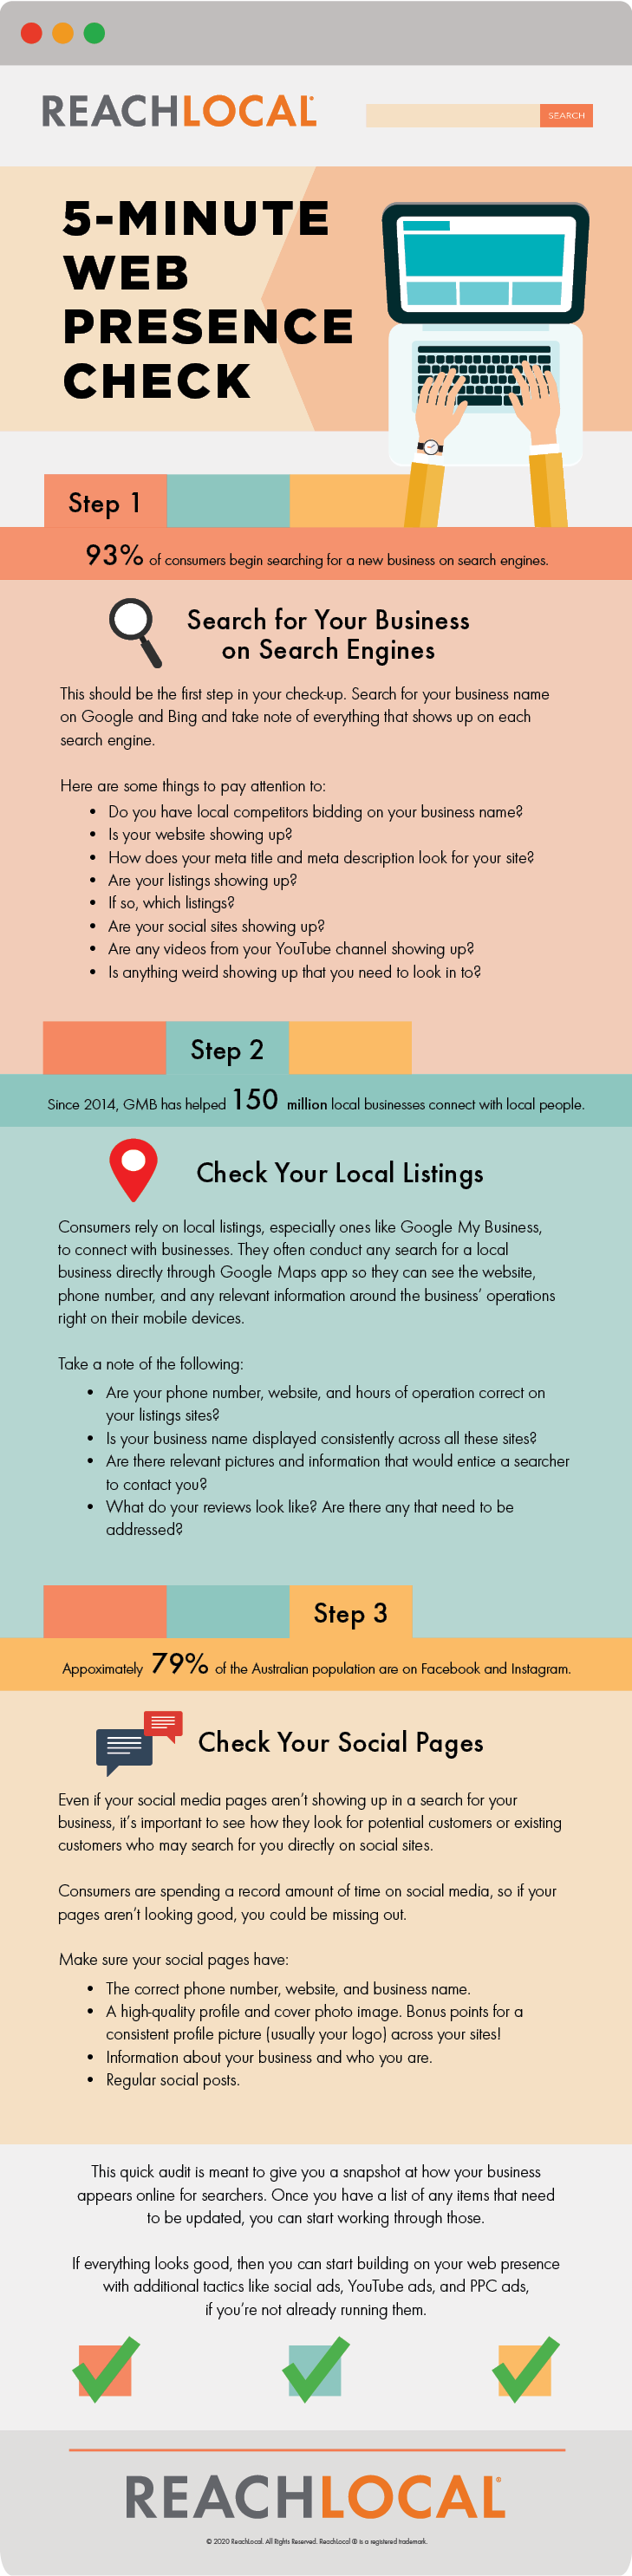 ReachLocal Infographic 5-Minute Web Presence Check